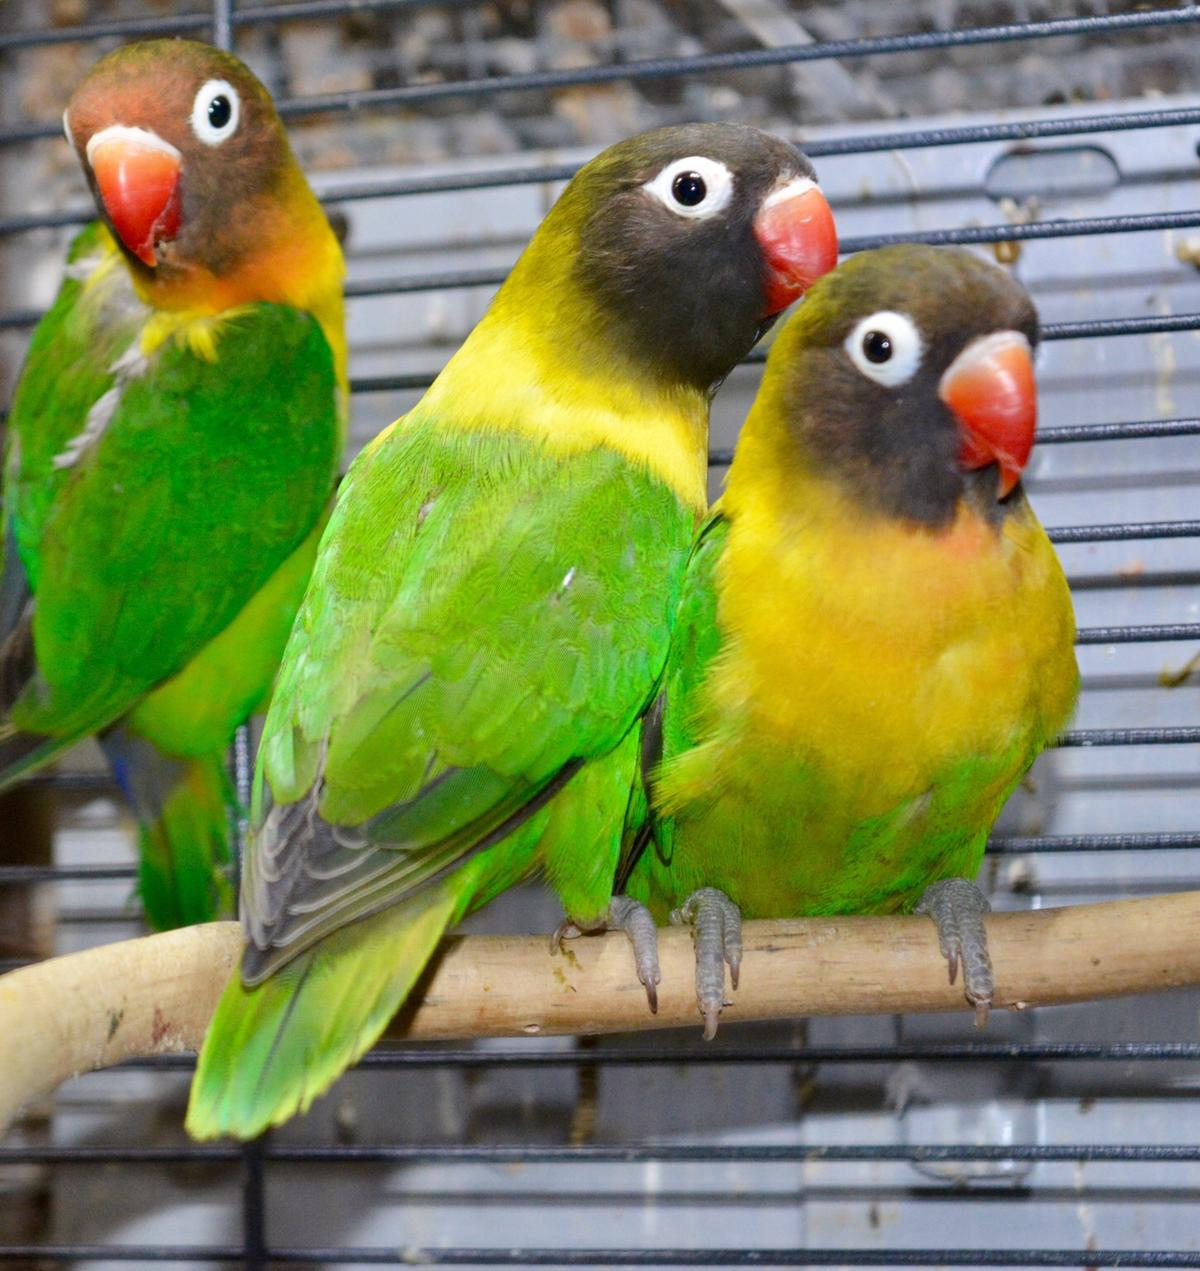 Young Lovebirds For Sale in WD3 Rivers for £40 00 for sale - Shpock